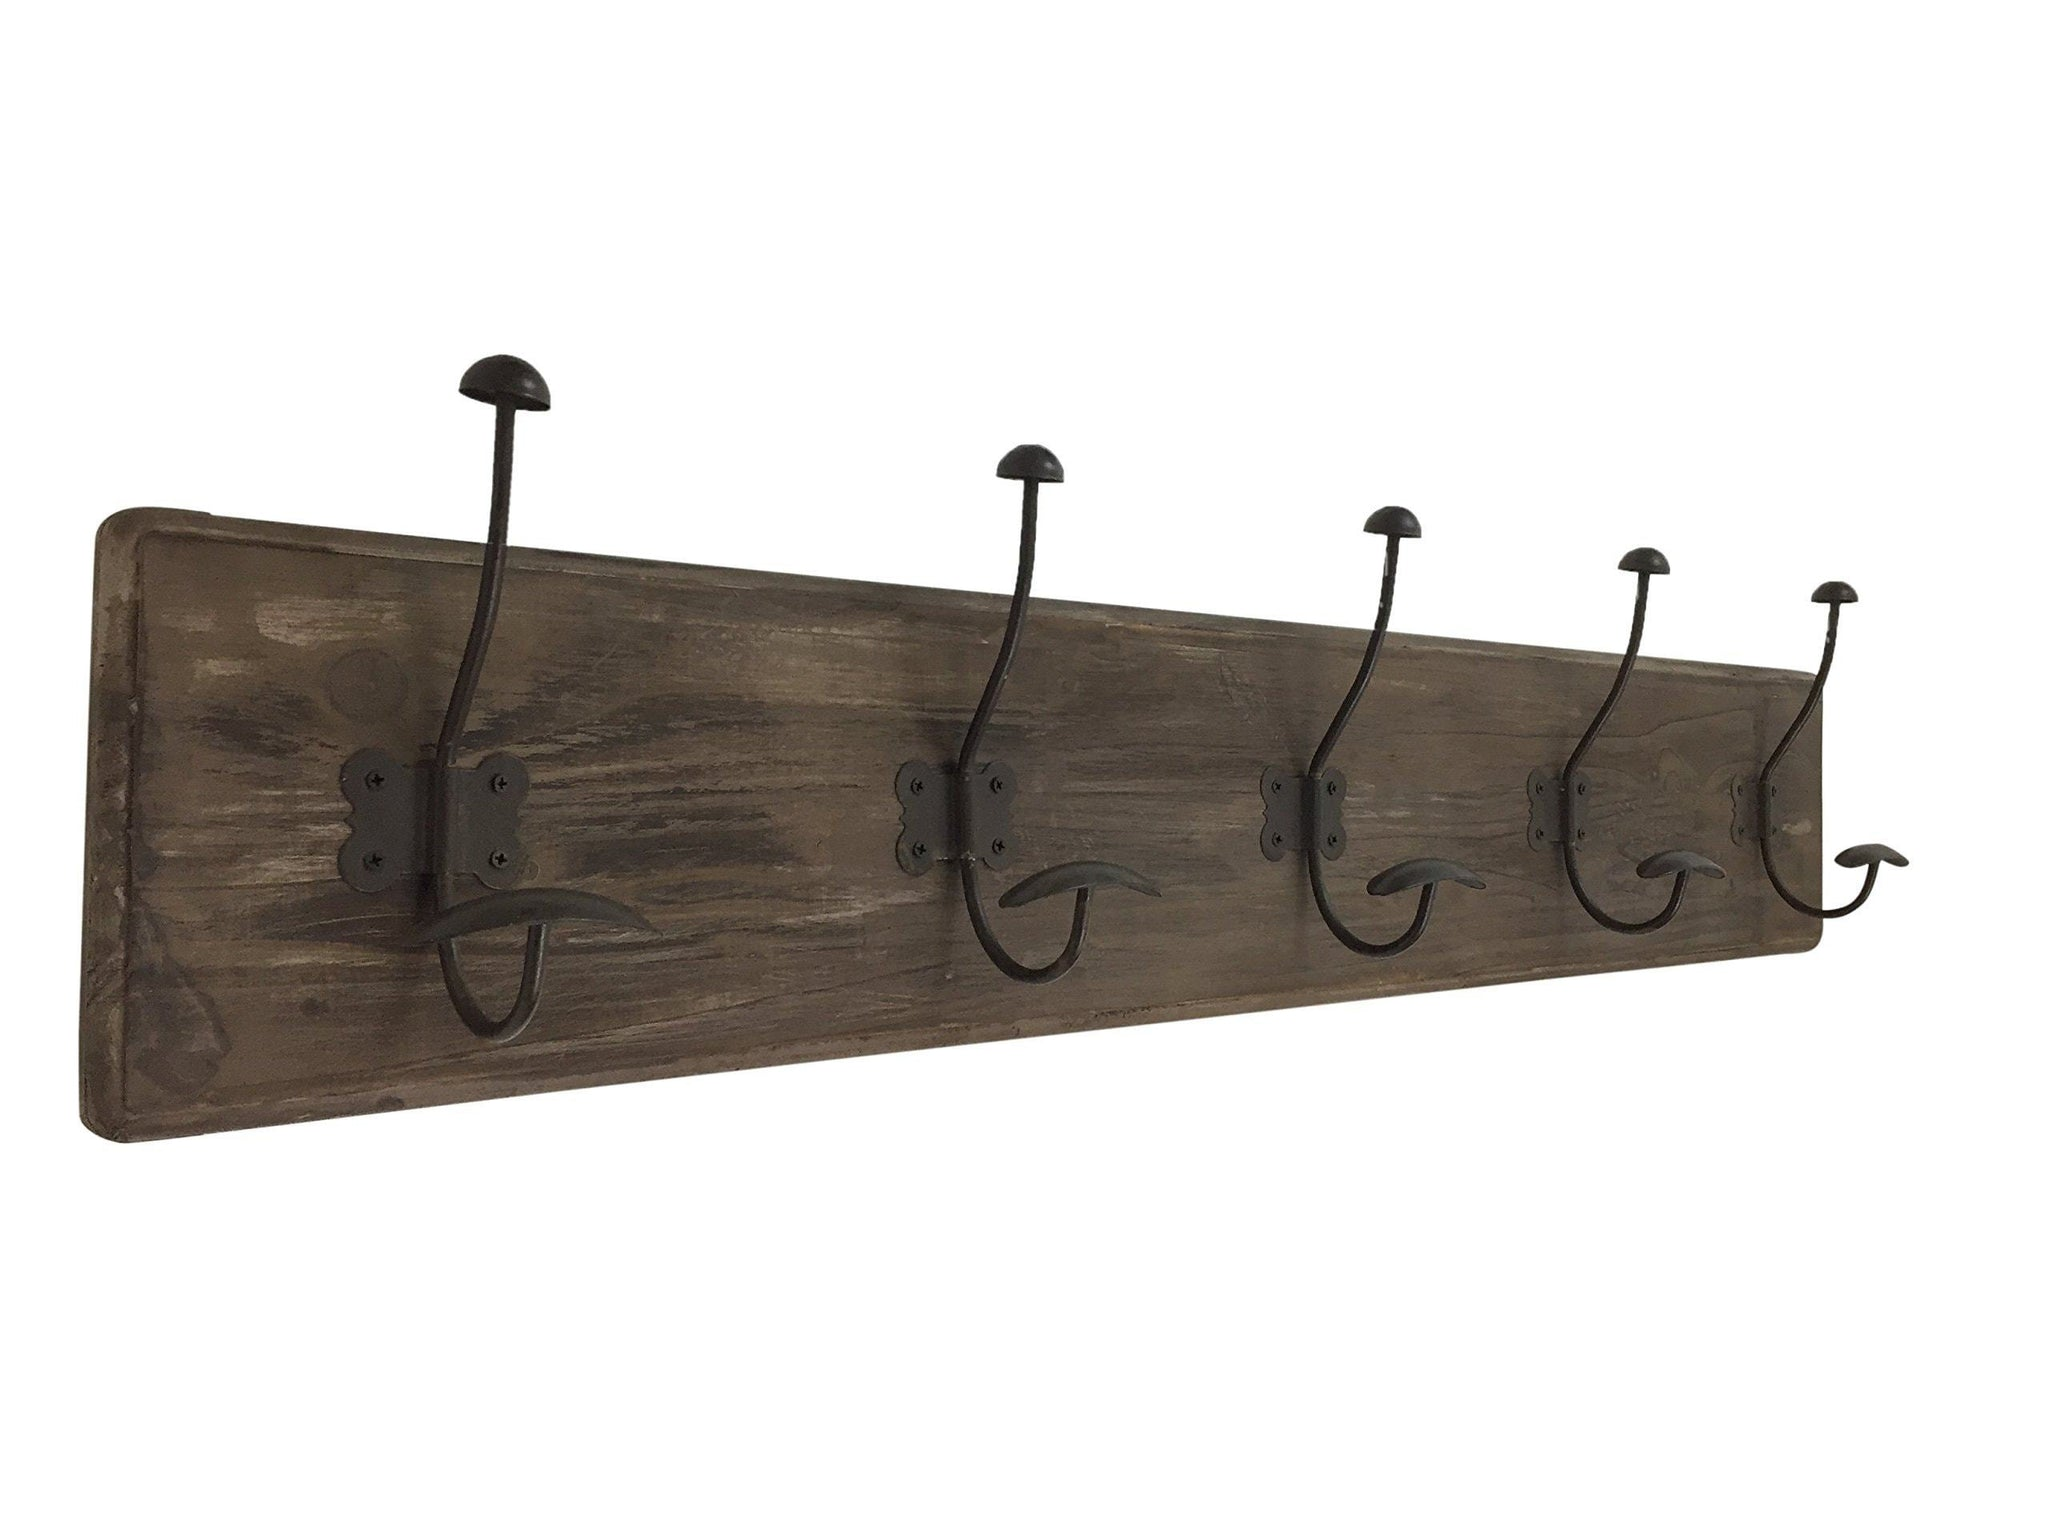 Budget friendly avignon home rustic coat rack with hooks vintage wooden wall mounted coat rack 38 inches wide and 7 inches high for entryway bathroom and closet